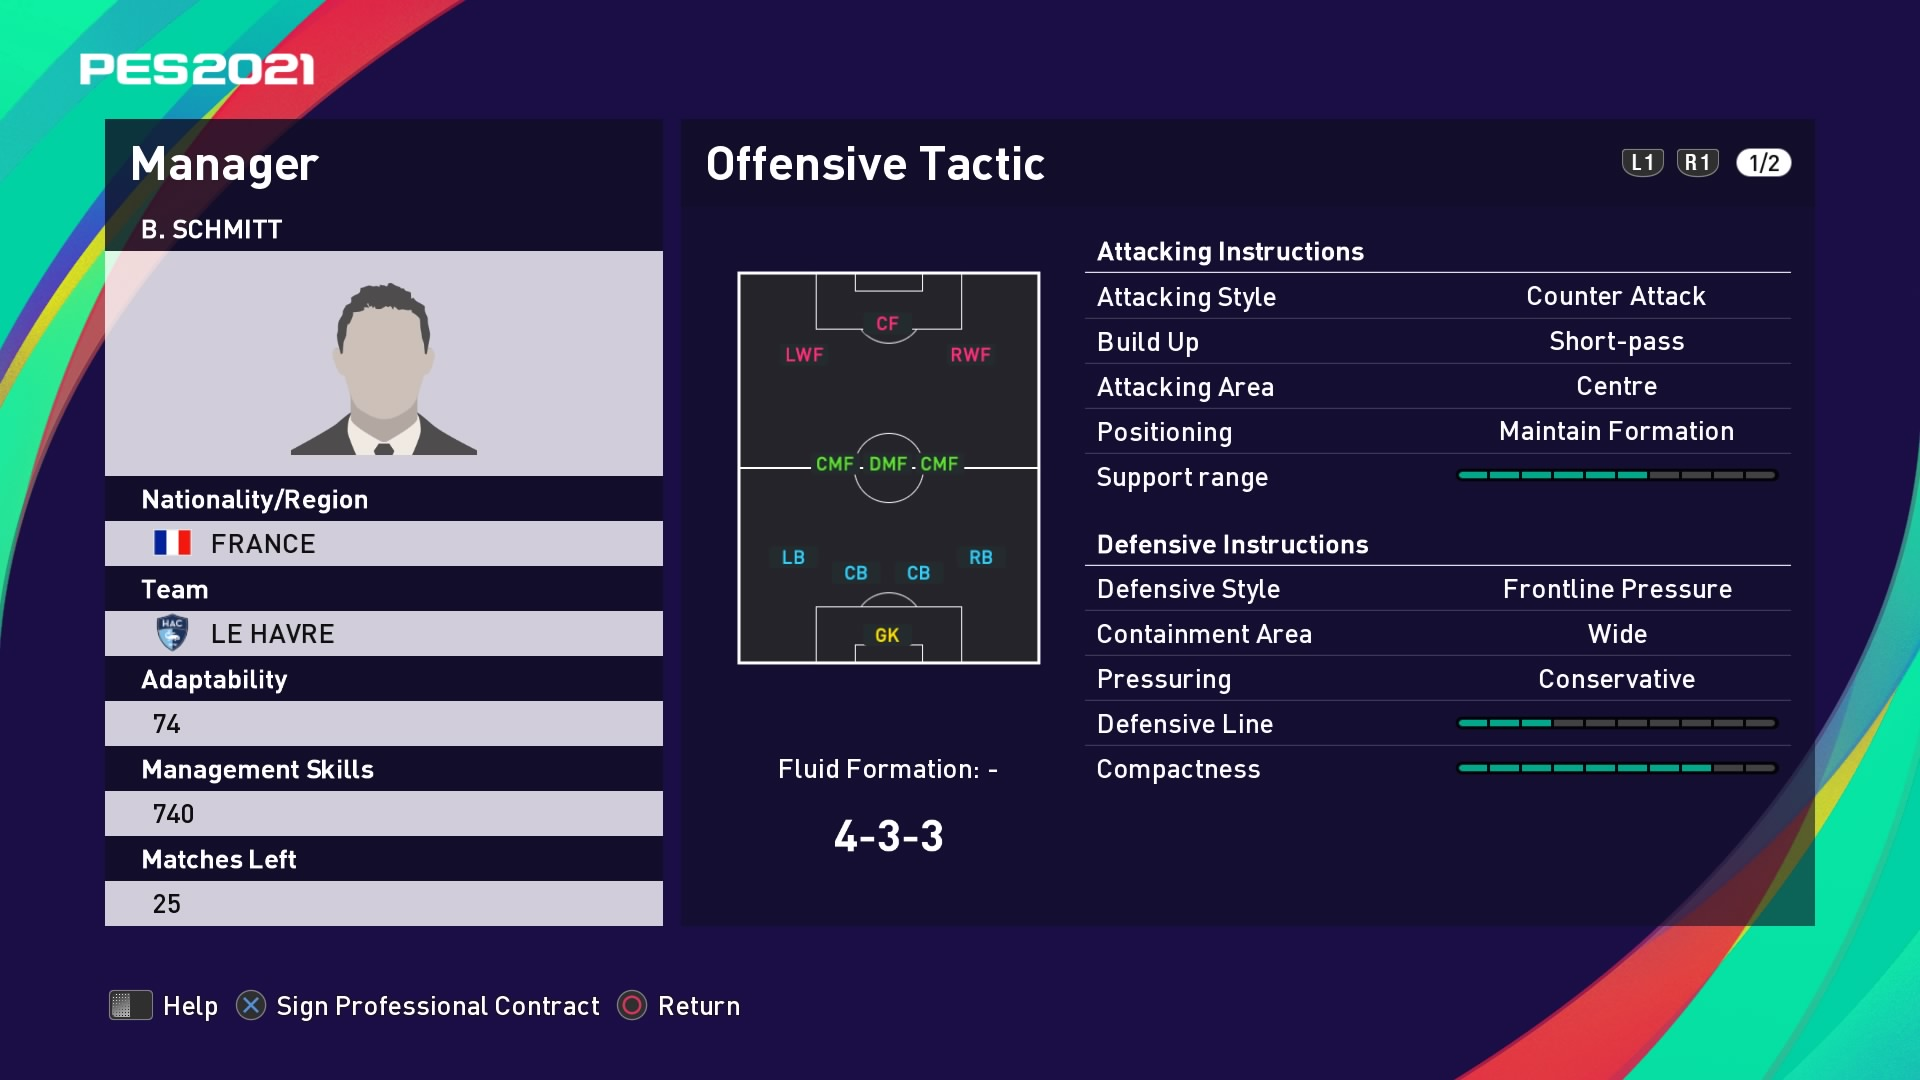 B. Schmitt (Paul Le Guen) Offensive Tactic in PES 2021 myClub